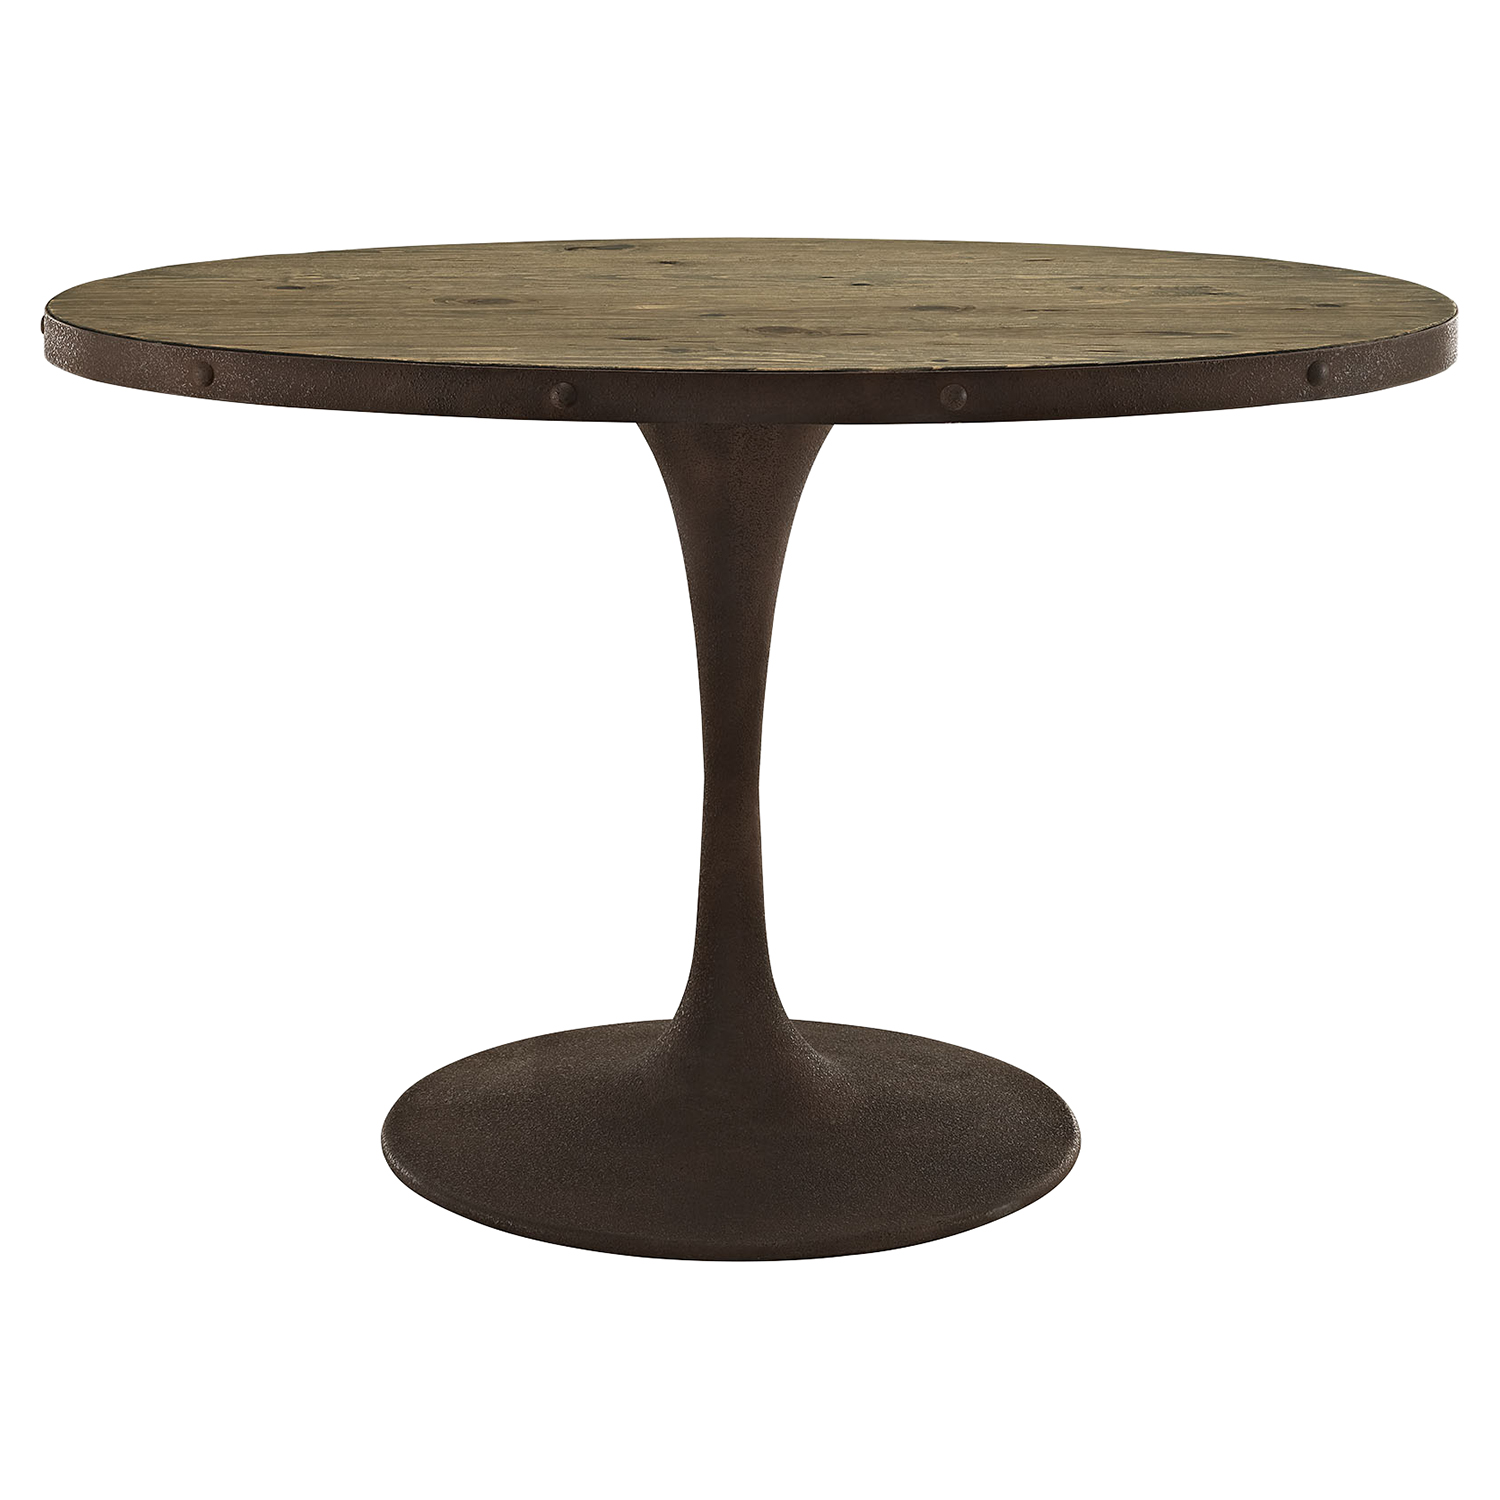 "Drive 47"" Oval Dining Table - Wood Top, Brown - EEI-2009-BRN-SET"